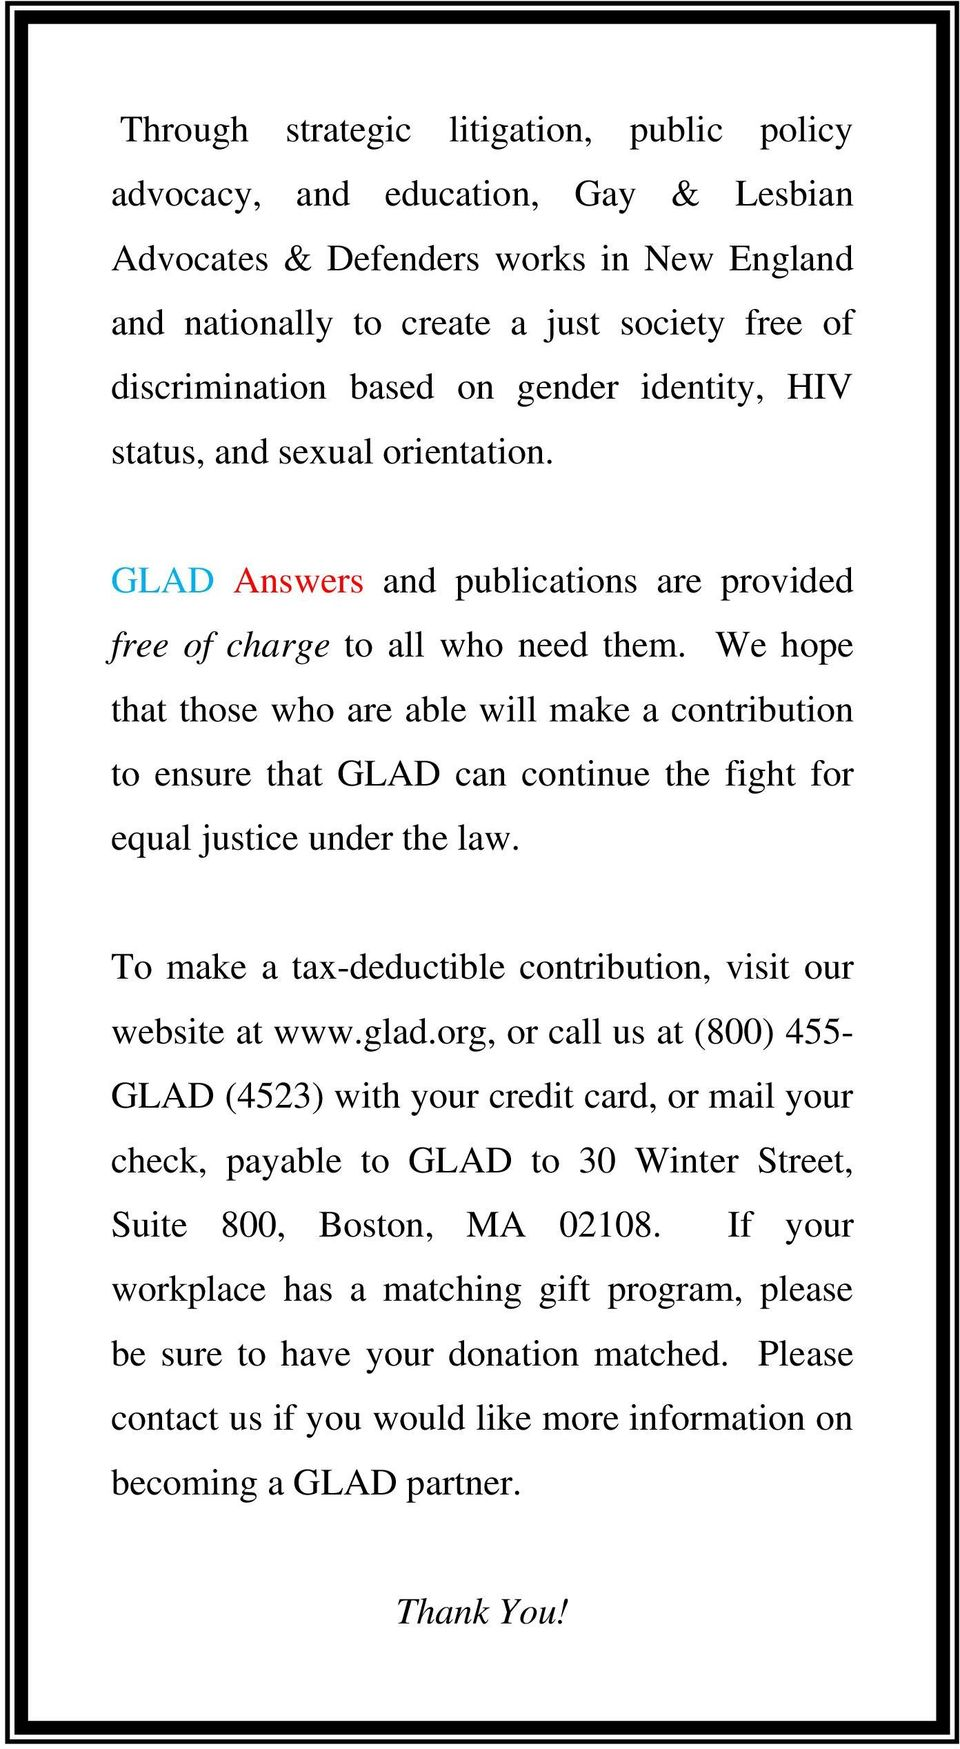 We hope that those who are able will make a contribution to ensure that GLAD can continue the fight for equal justice under the law. To make a tax-deductible contribution, visit our website at www.